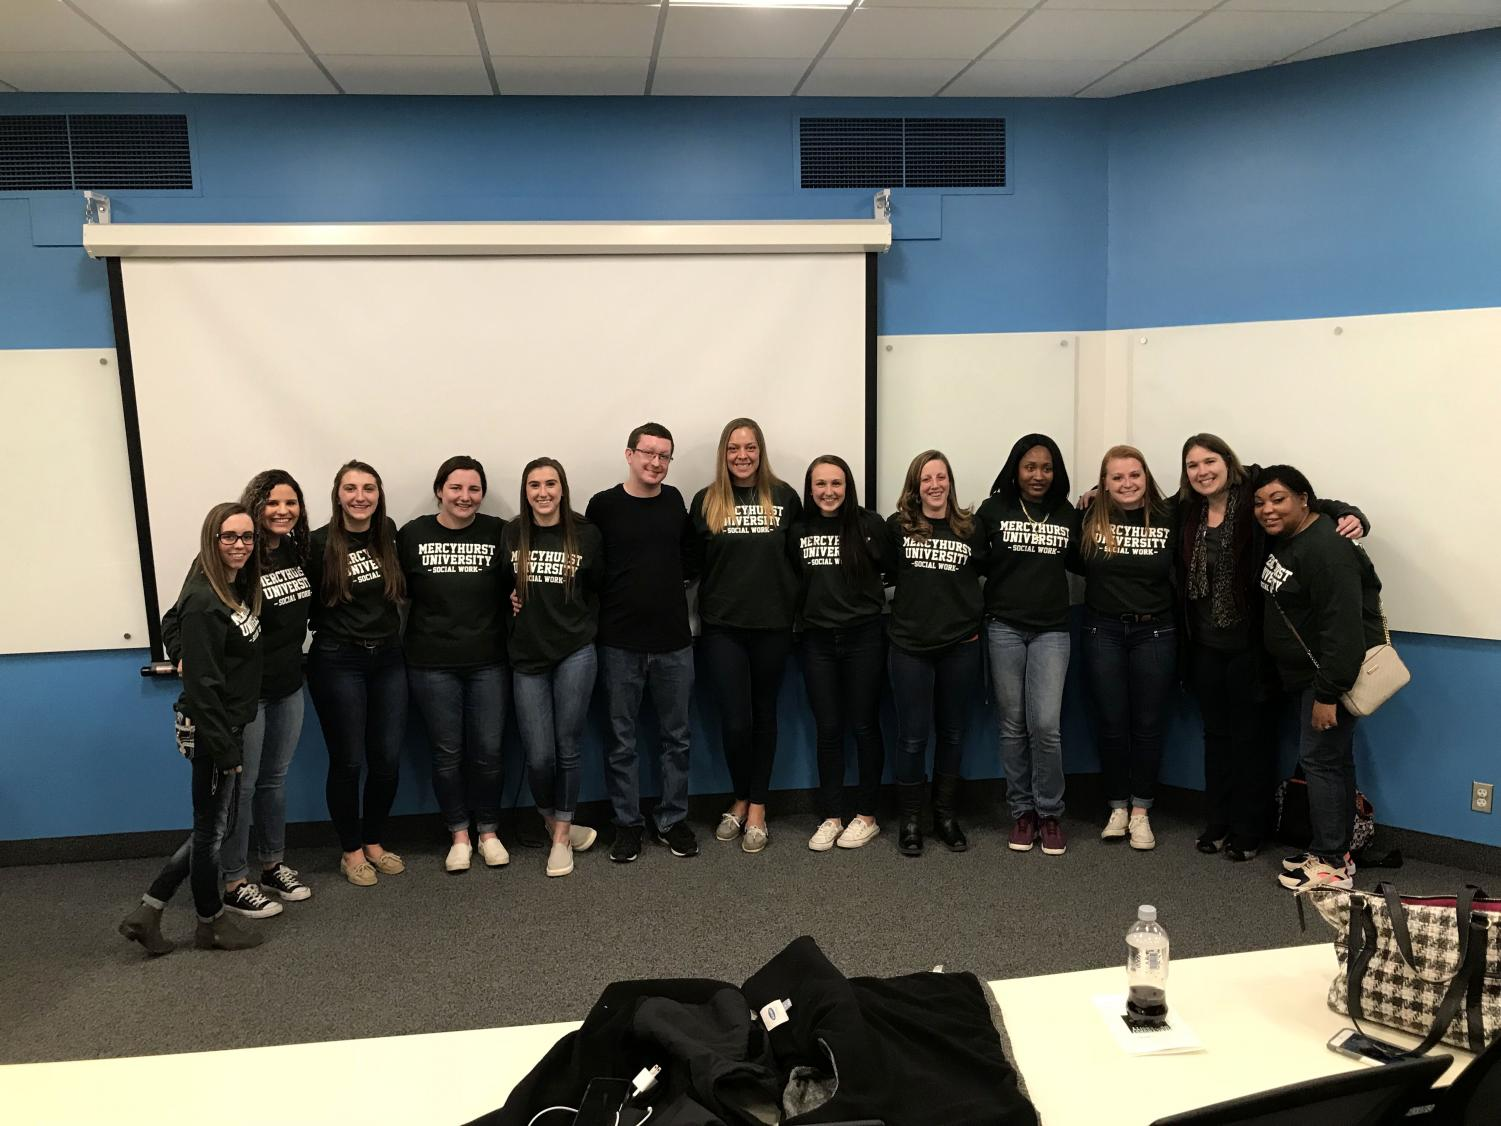 """The Social Work students who created the documentary """"It Can Happen To Anyone"""" are joined by Communication student Brent Clapper, who assisted with editing."""